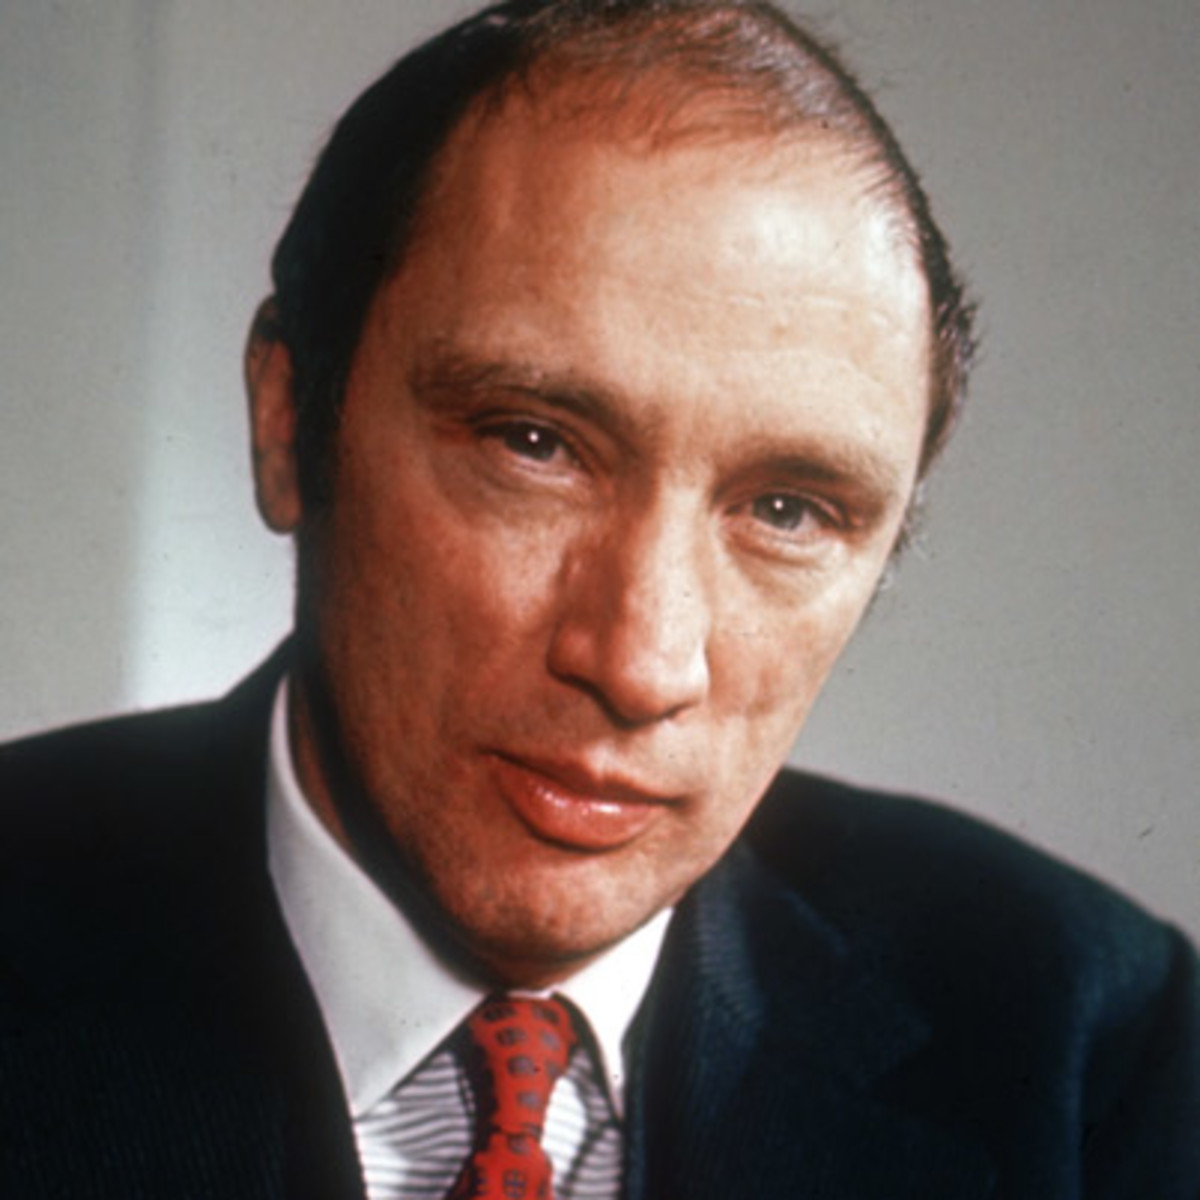 pierre trudeau Information about pierre trudeau including a short biography and their connection to canada.